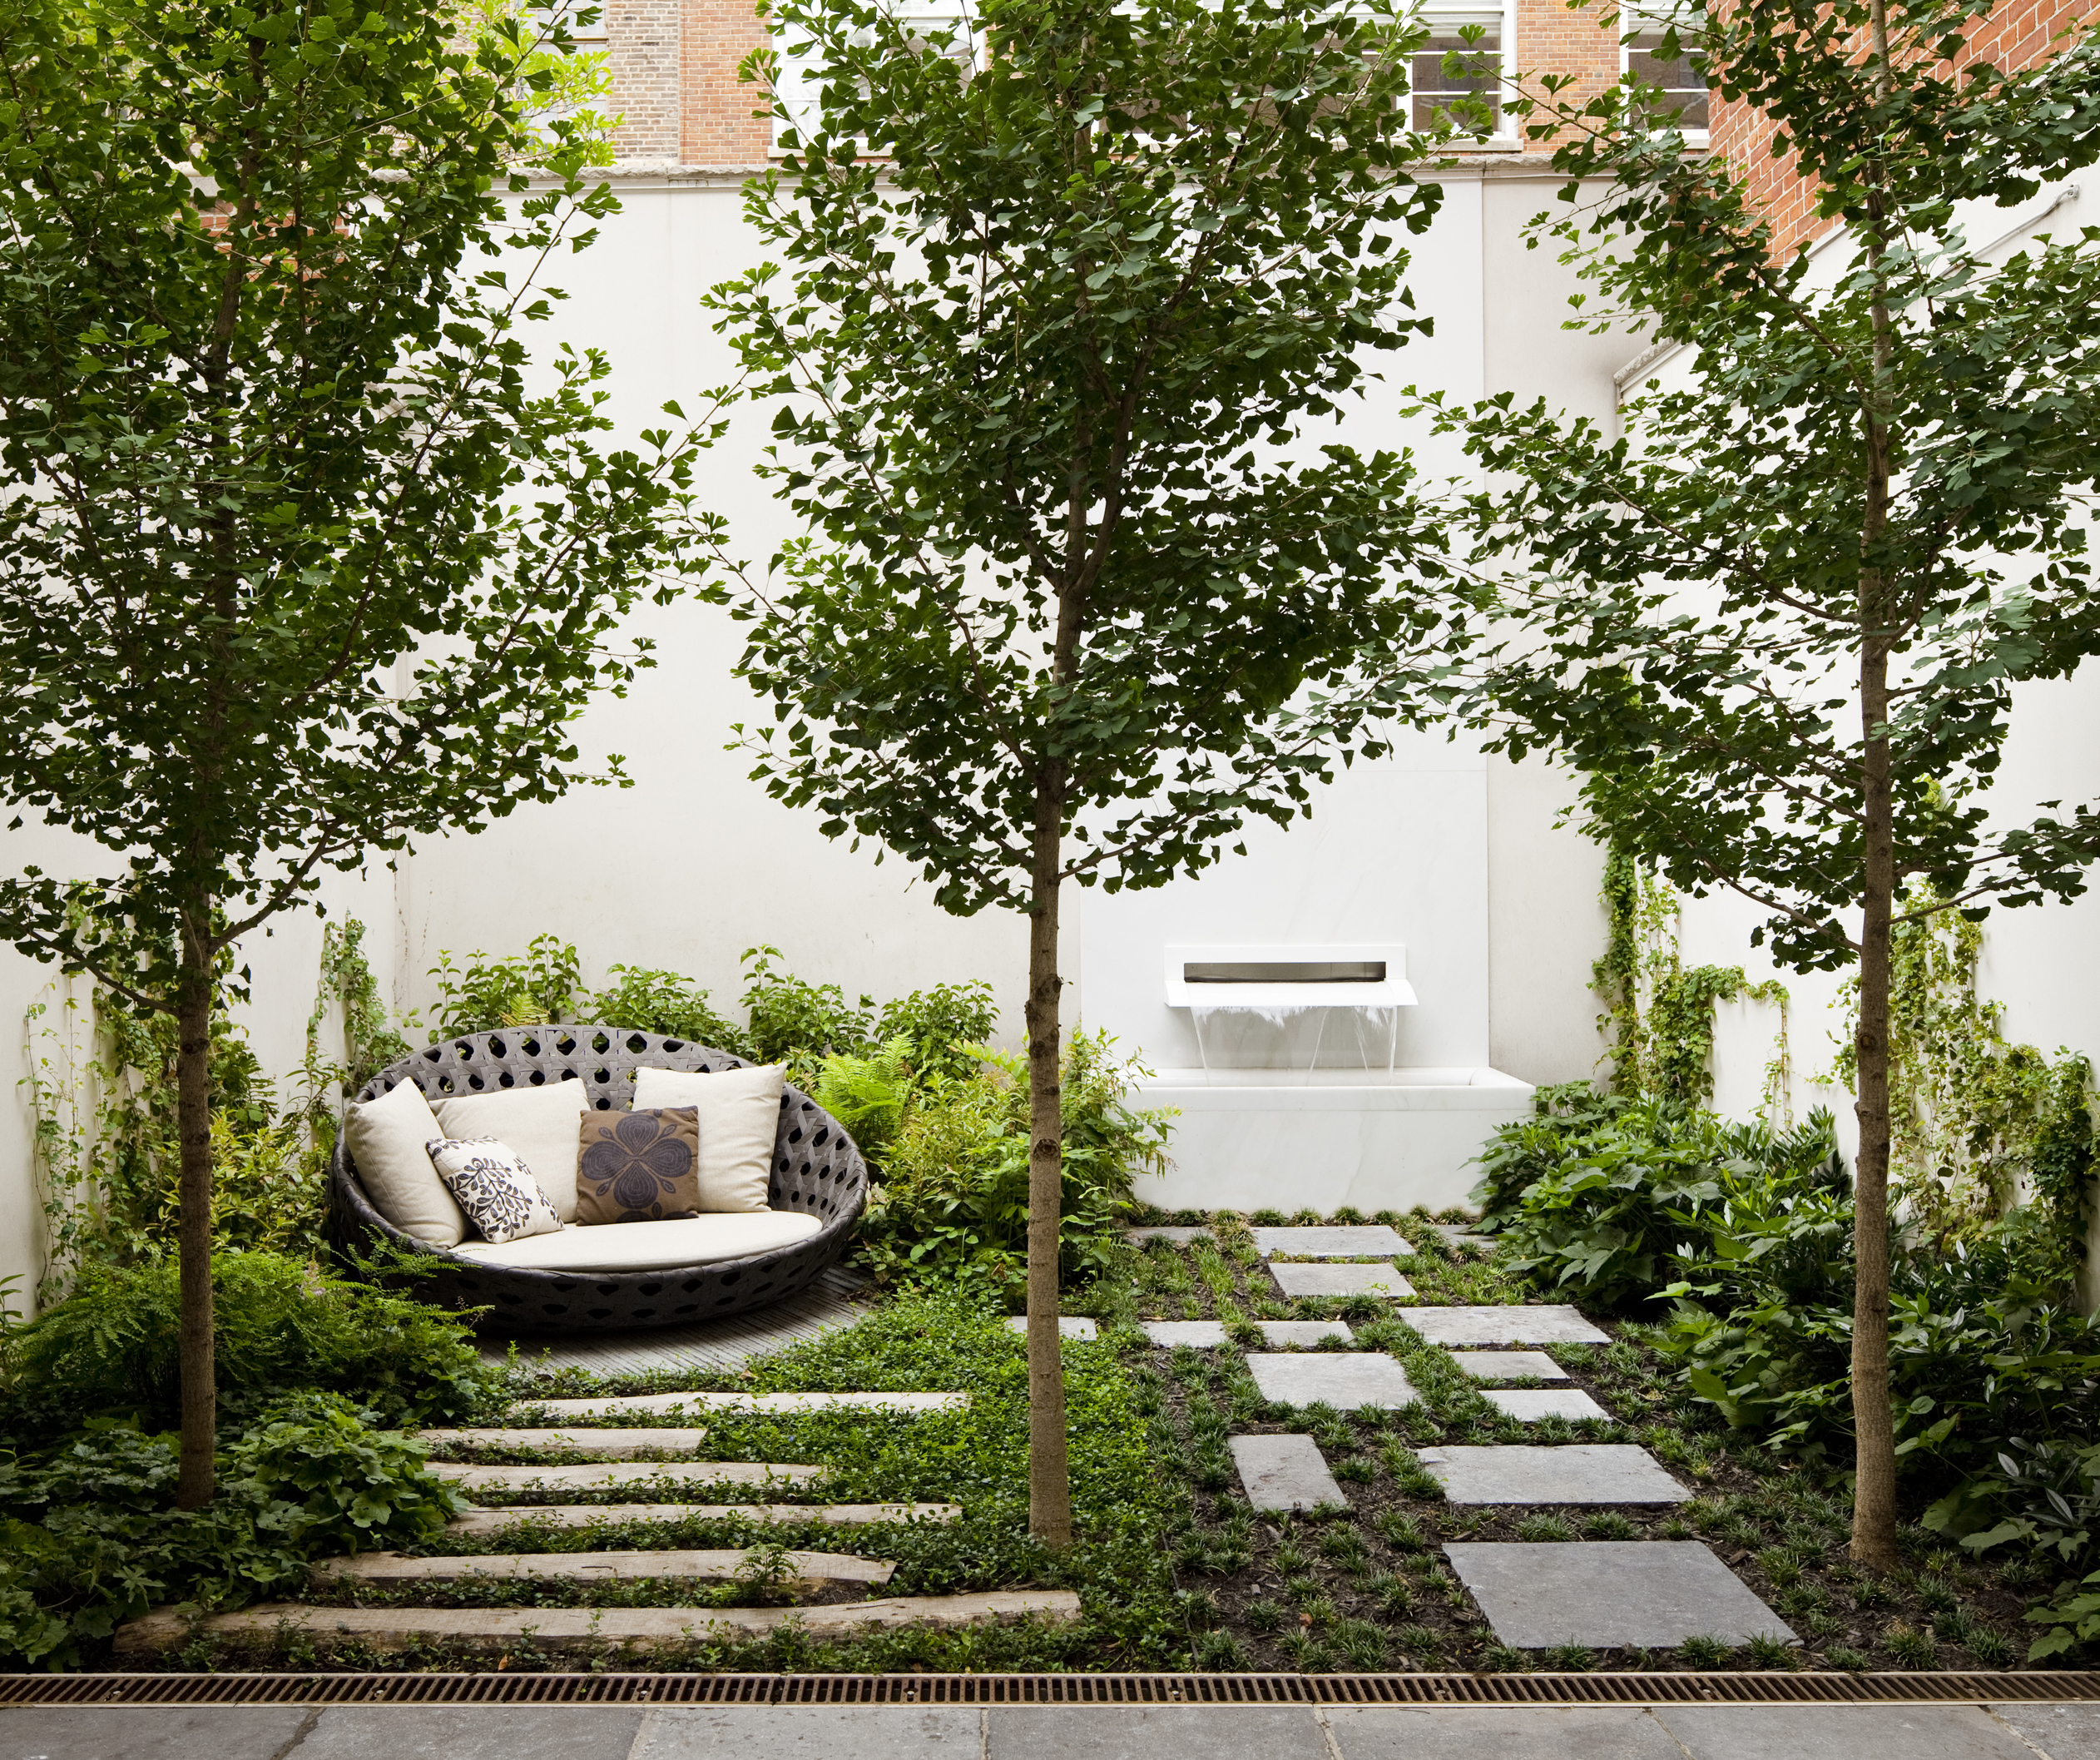 Asla 2011 professional awards carnegie hill house for Disenos de patios traseros